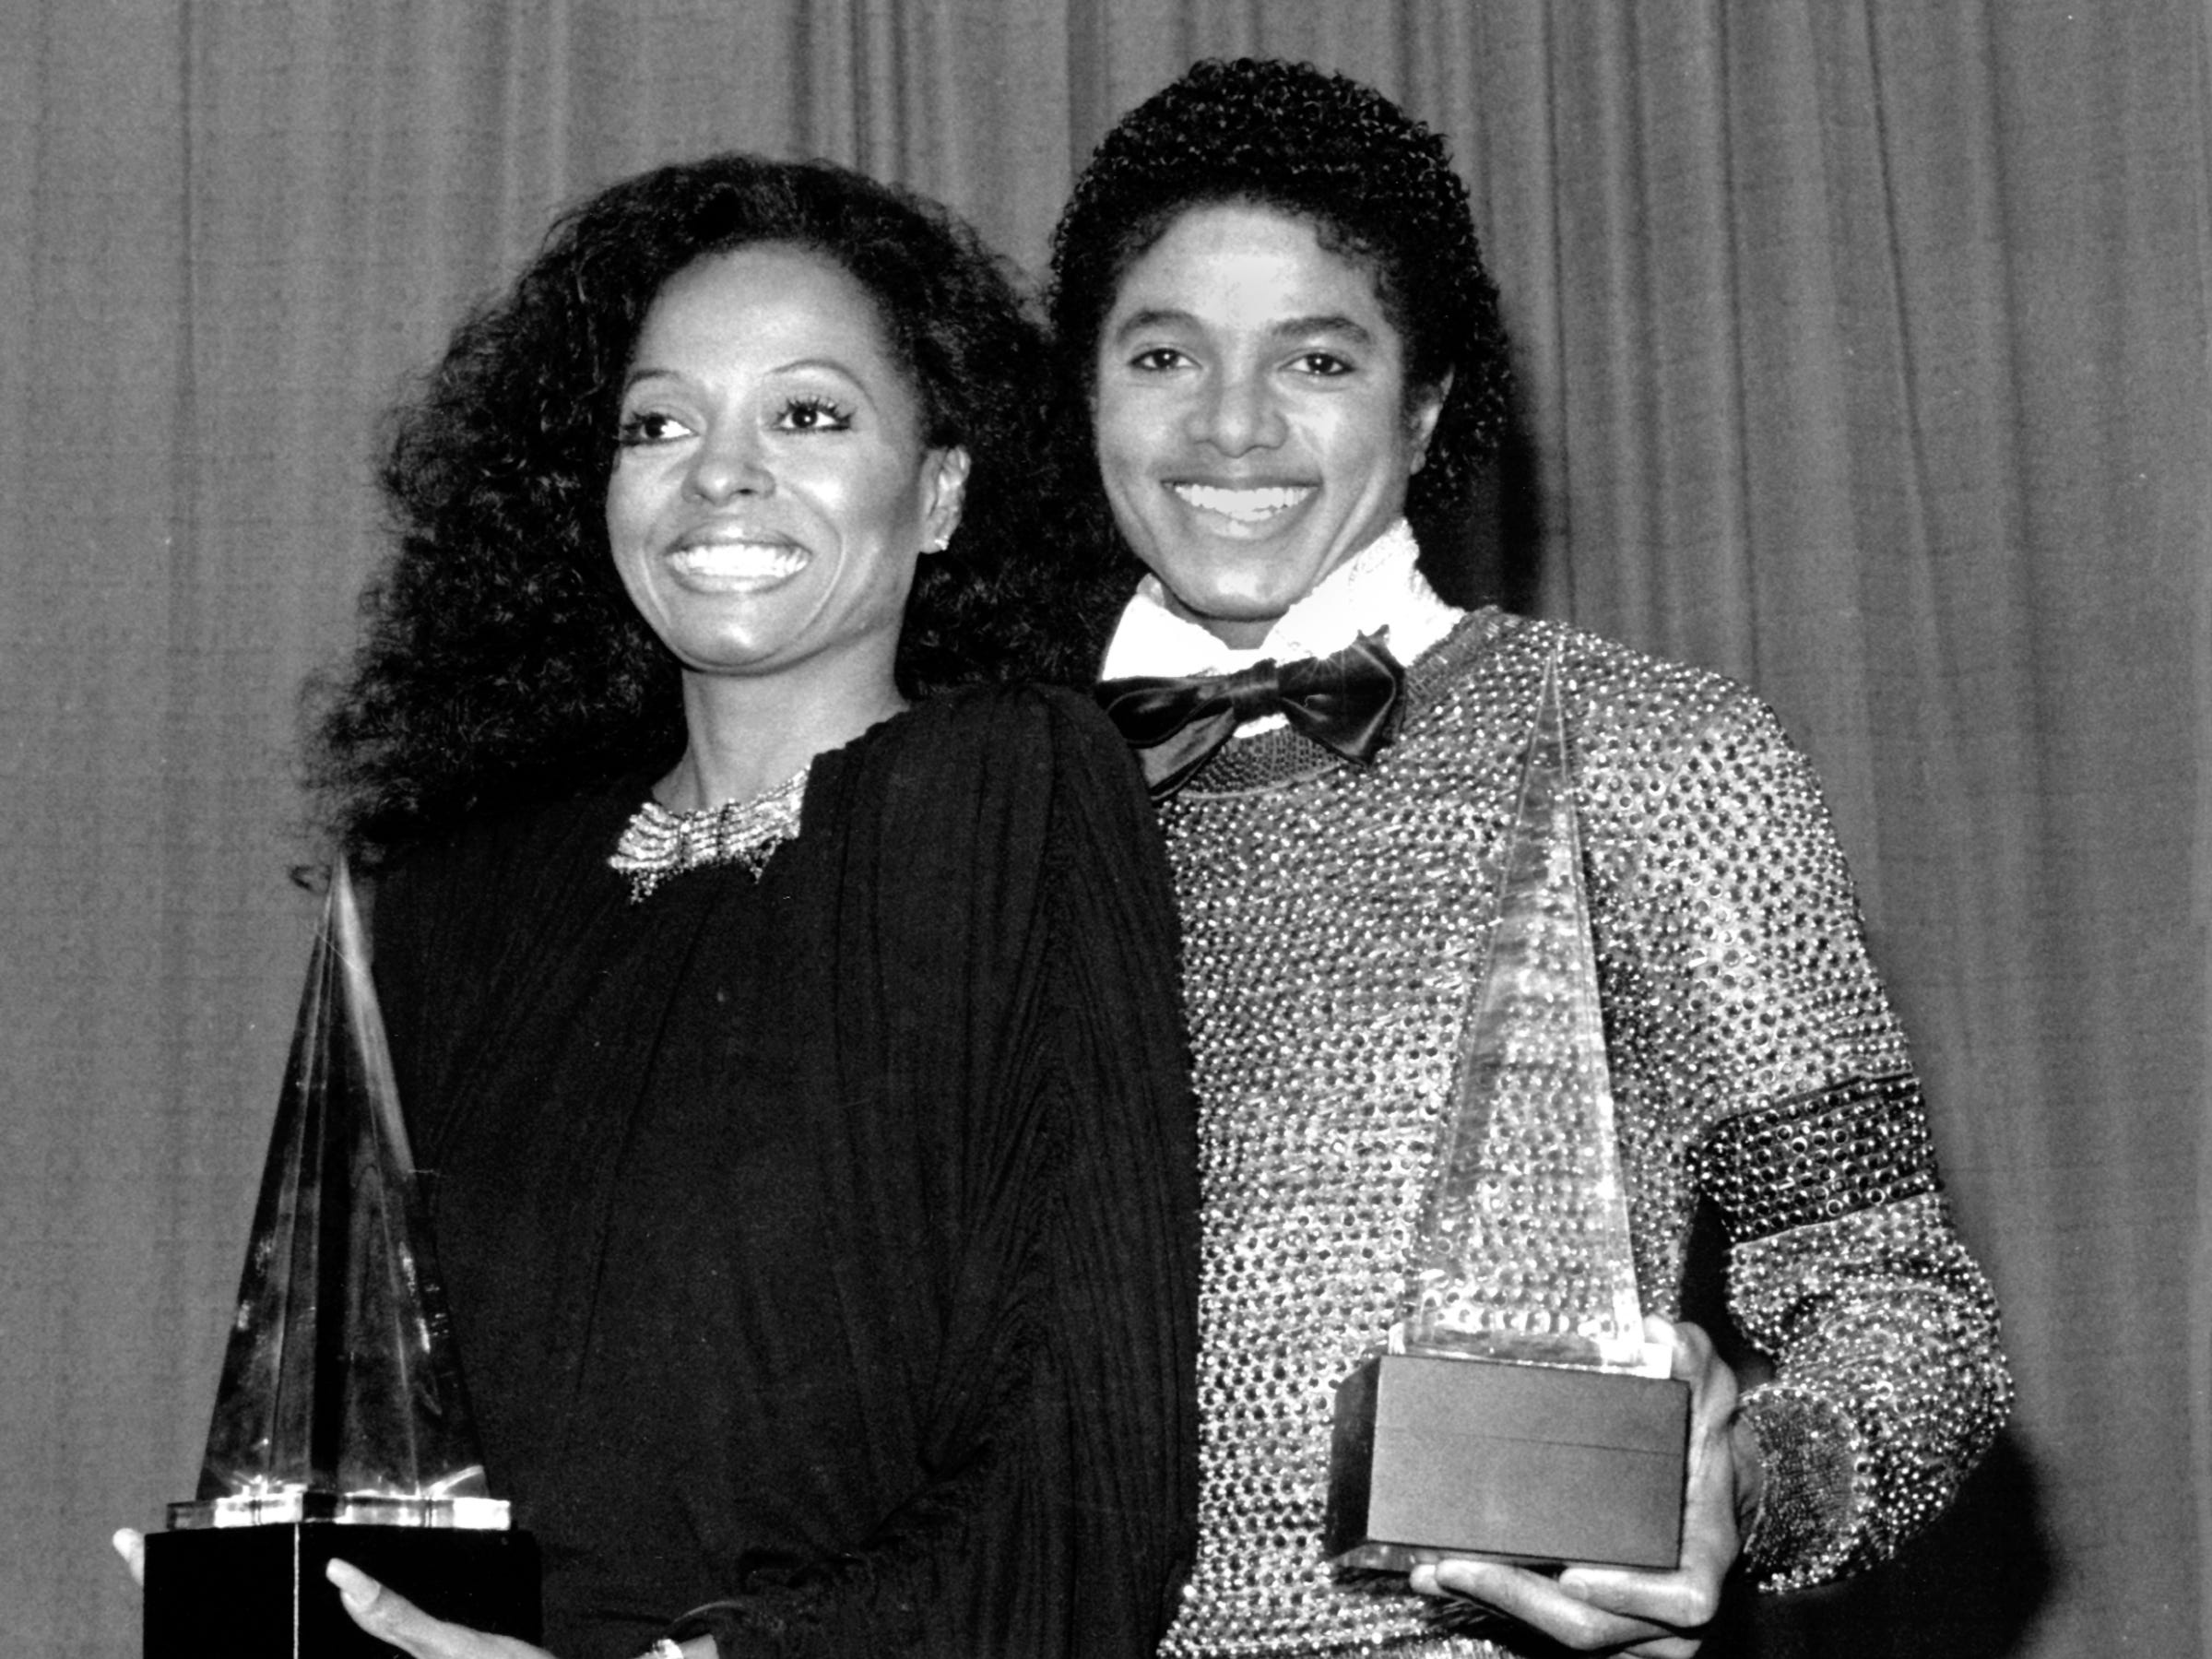 Music icons Diana Ross and Michael Jackson hold their American Music Awards in Los Angeles on Jan. 30, 1981.  Jackson won for favorite soul album and Ross for favorite female soul vocalist.  By this time Ross had left the Motown label and signed with RCA and Capitol Records.